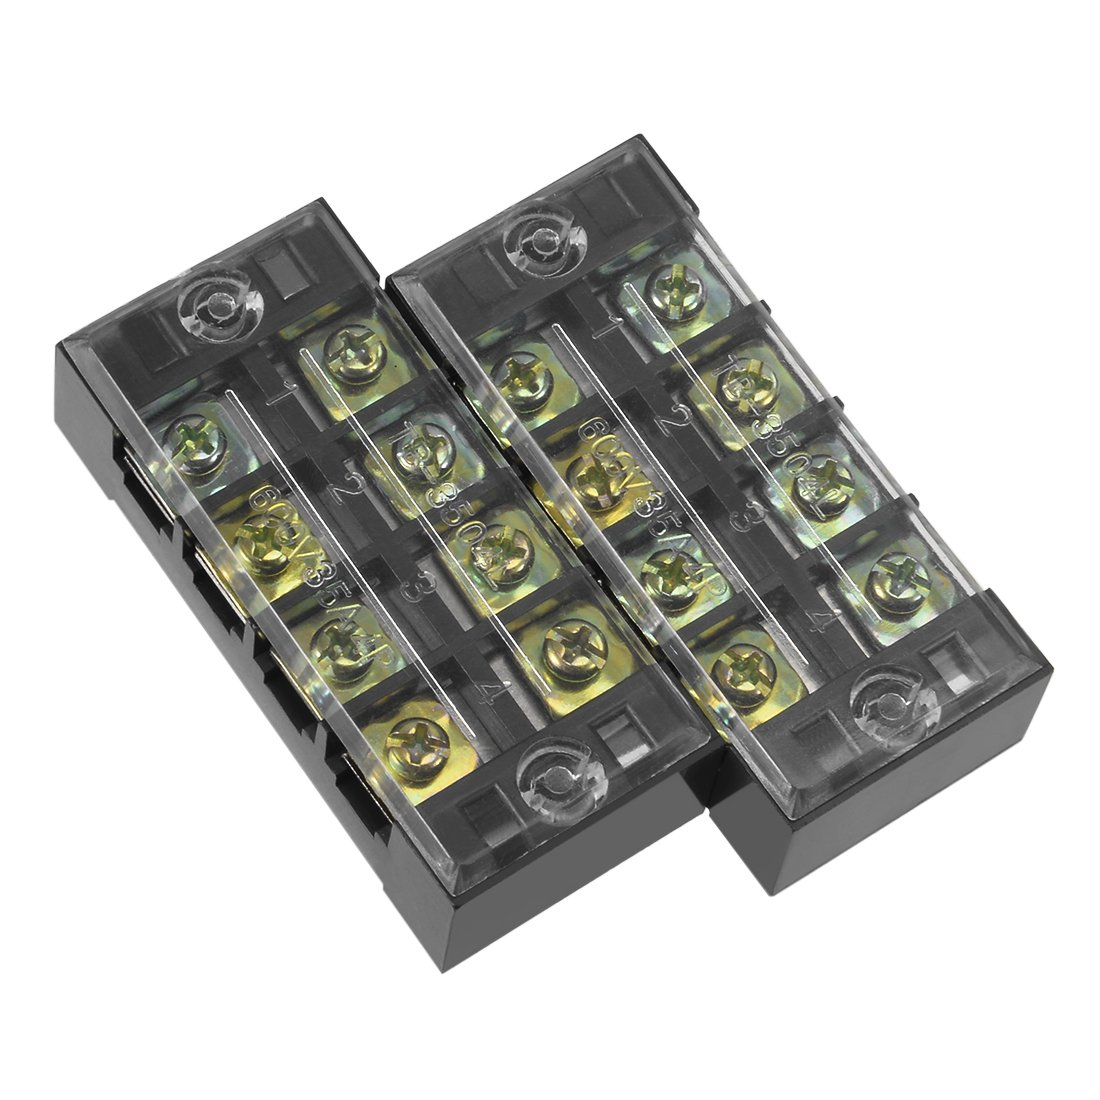 uxcell 2 Pcs 4 Positions Dual Rows 600V 45A Wire Barrier Block Terminal Strip TB-4504L